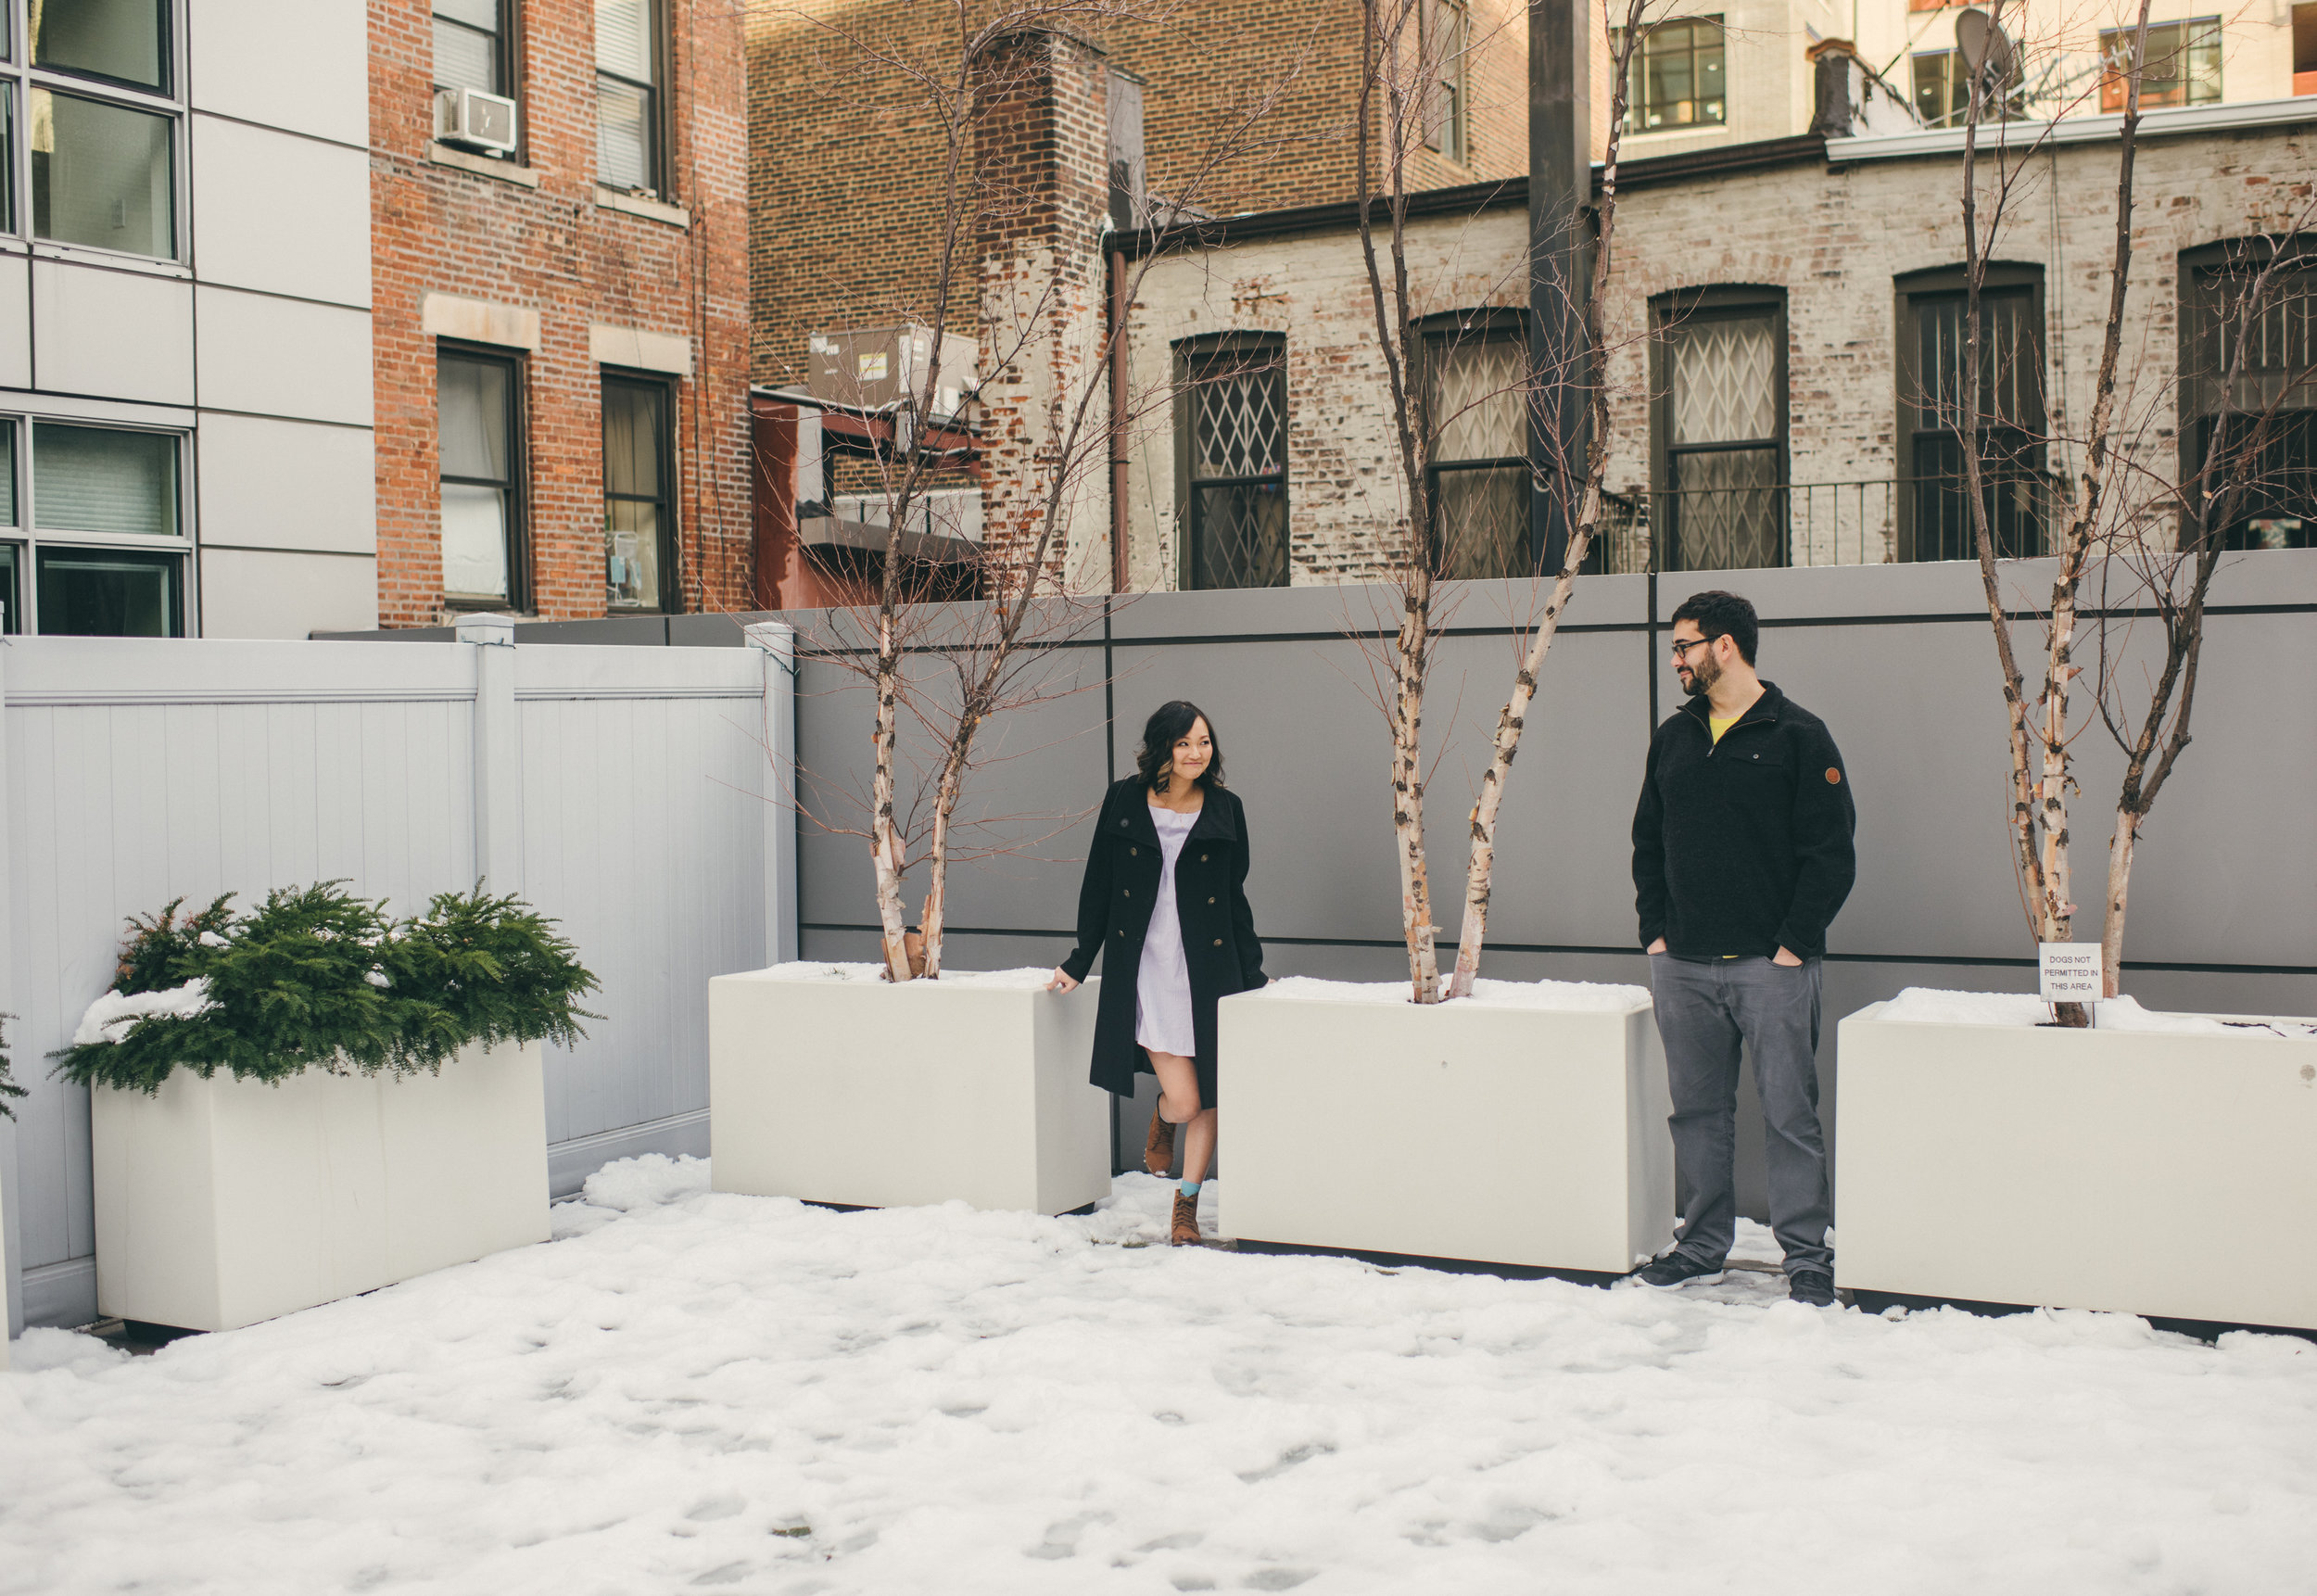 LILY & ANDREW - ENGAGED - TWOTWENTY by CHI-CHI AGBIM-134.jpg